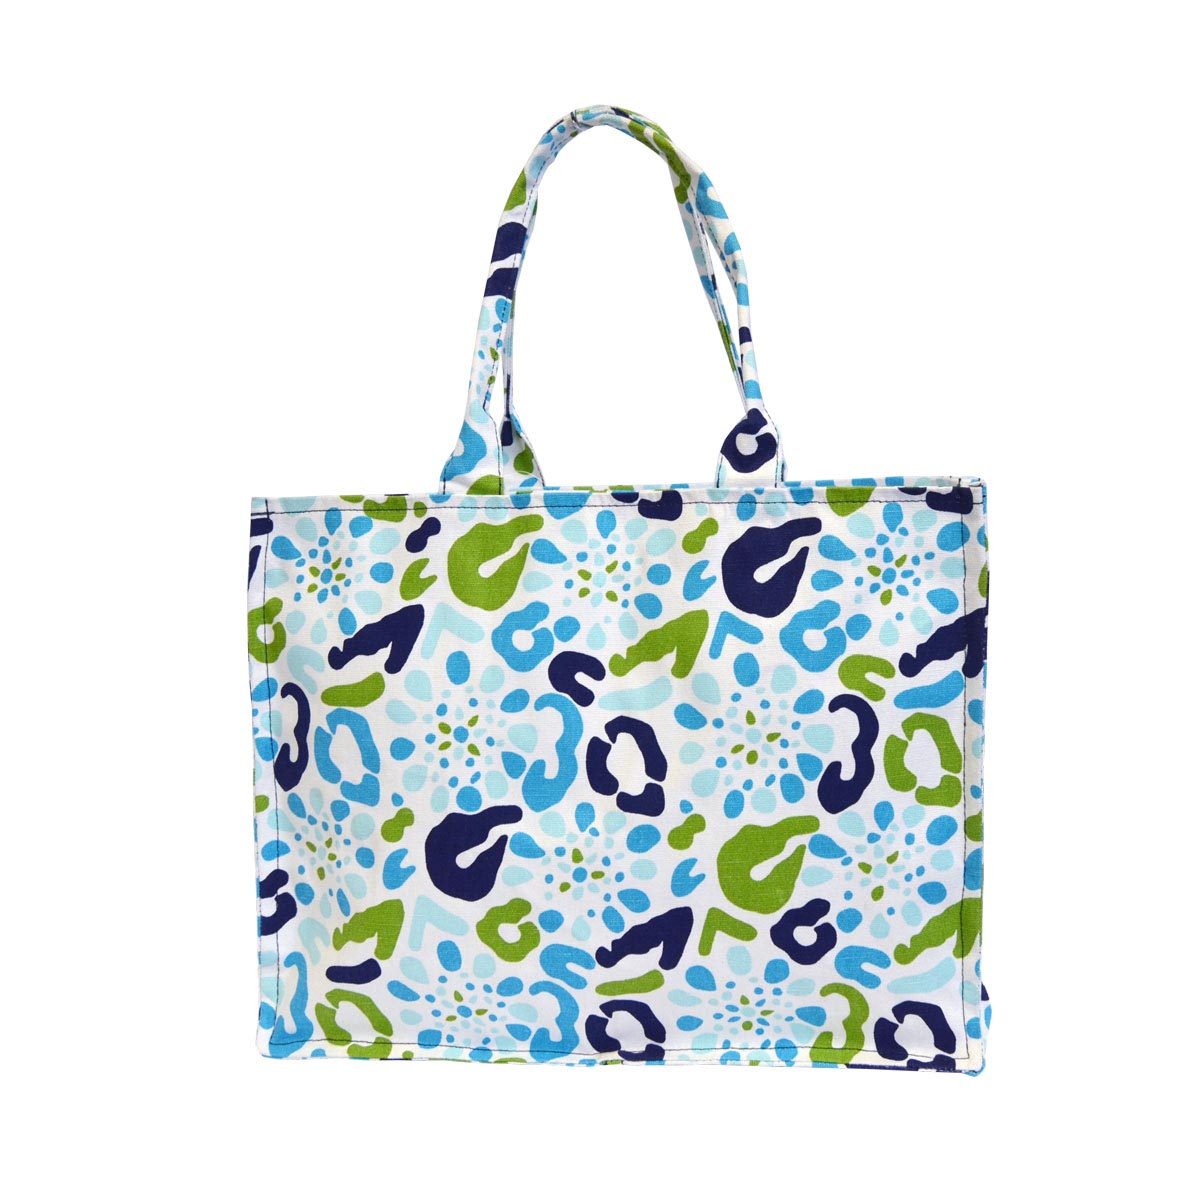 cha cha cheetah canvas tote